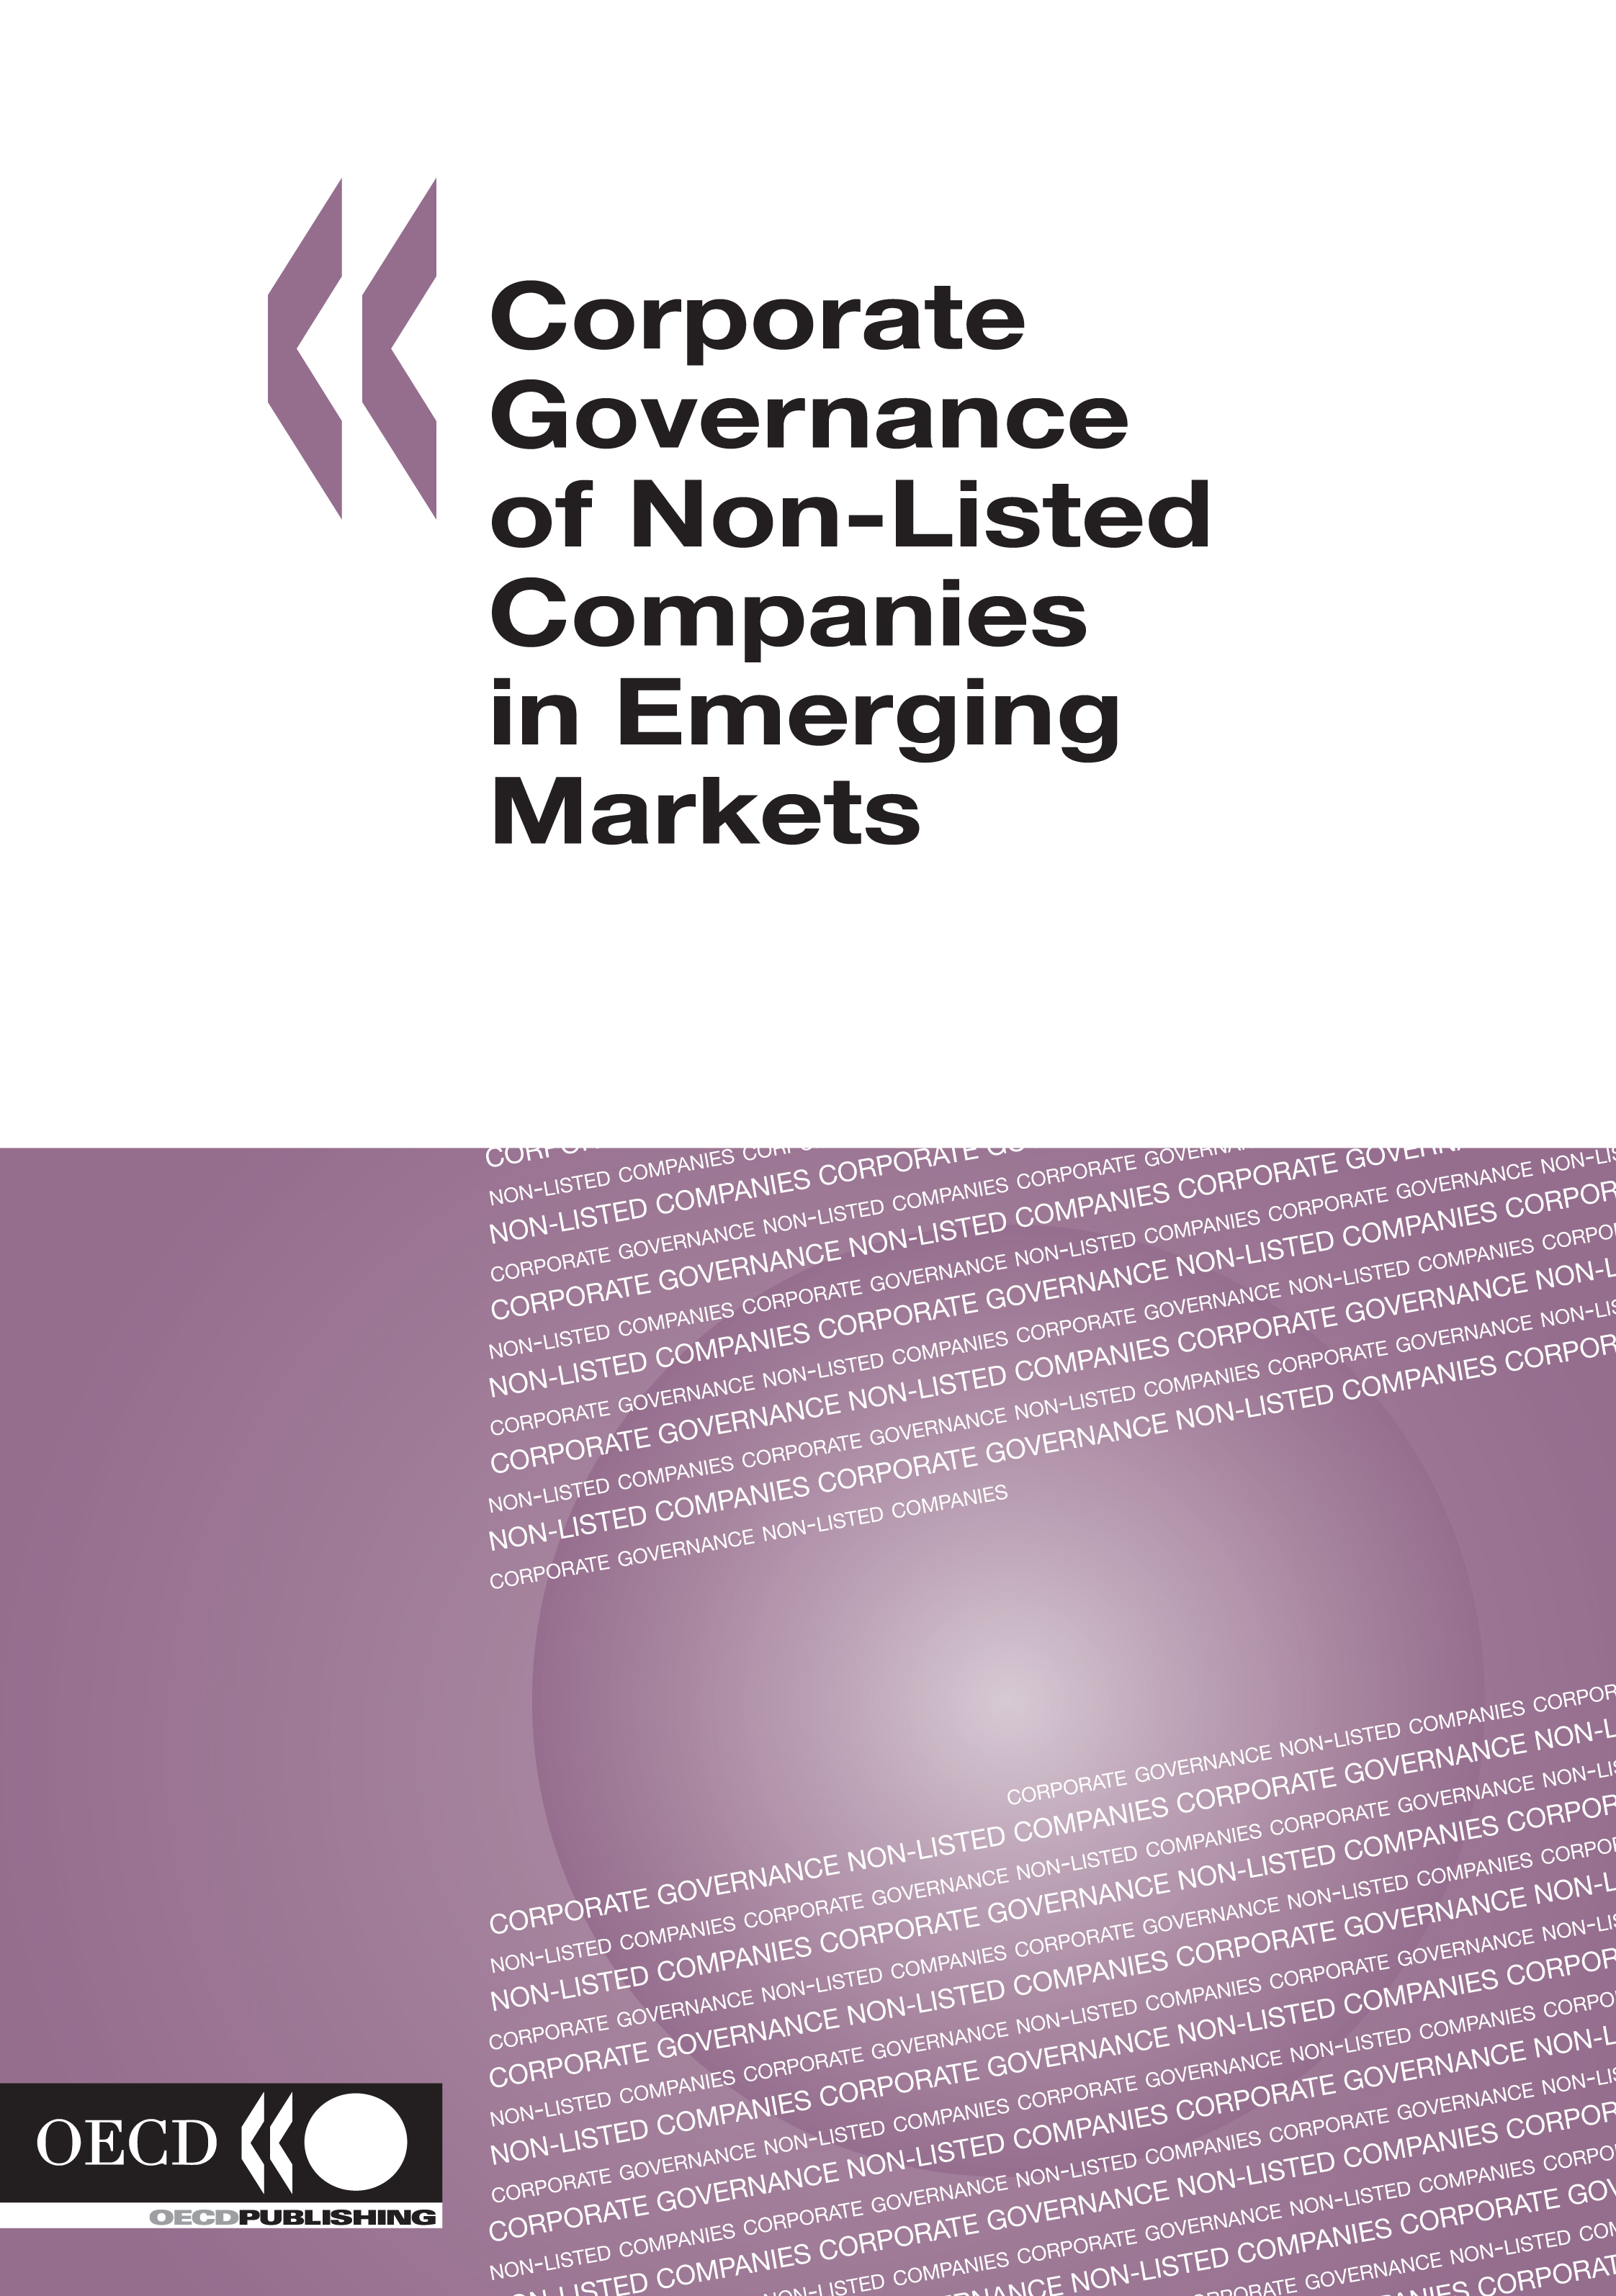 impact of corporate governance in emerging economies Corporate governance in emerging economies saptarshi ghosh the rise of china and india, along with other big emerging economies in africa, asia and latin america, has shifted the focus of future corporate governance research and reforms to the way these economies finance and govern their companies.